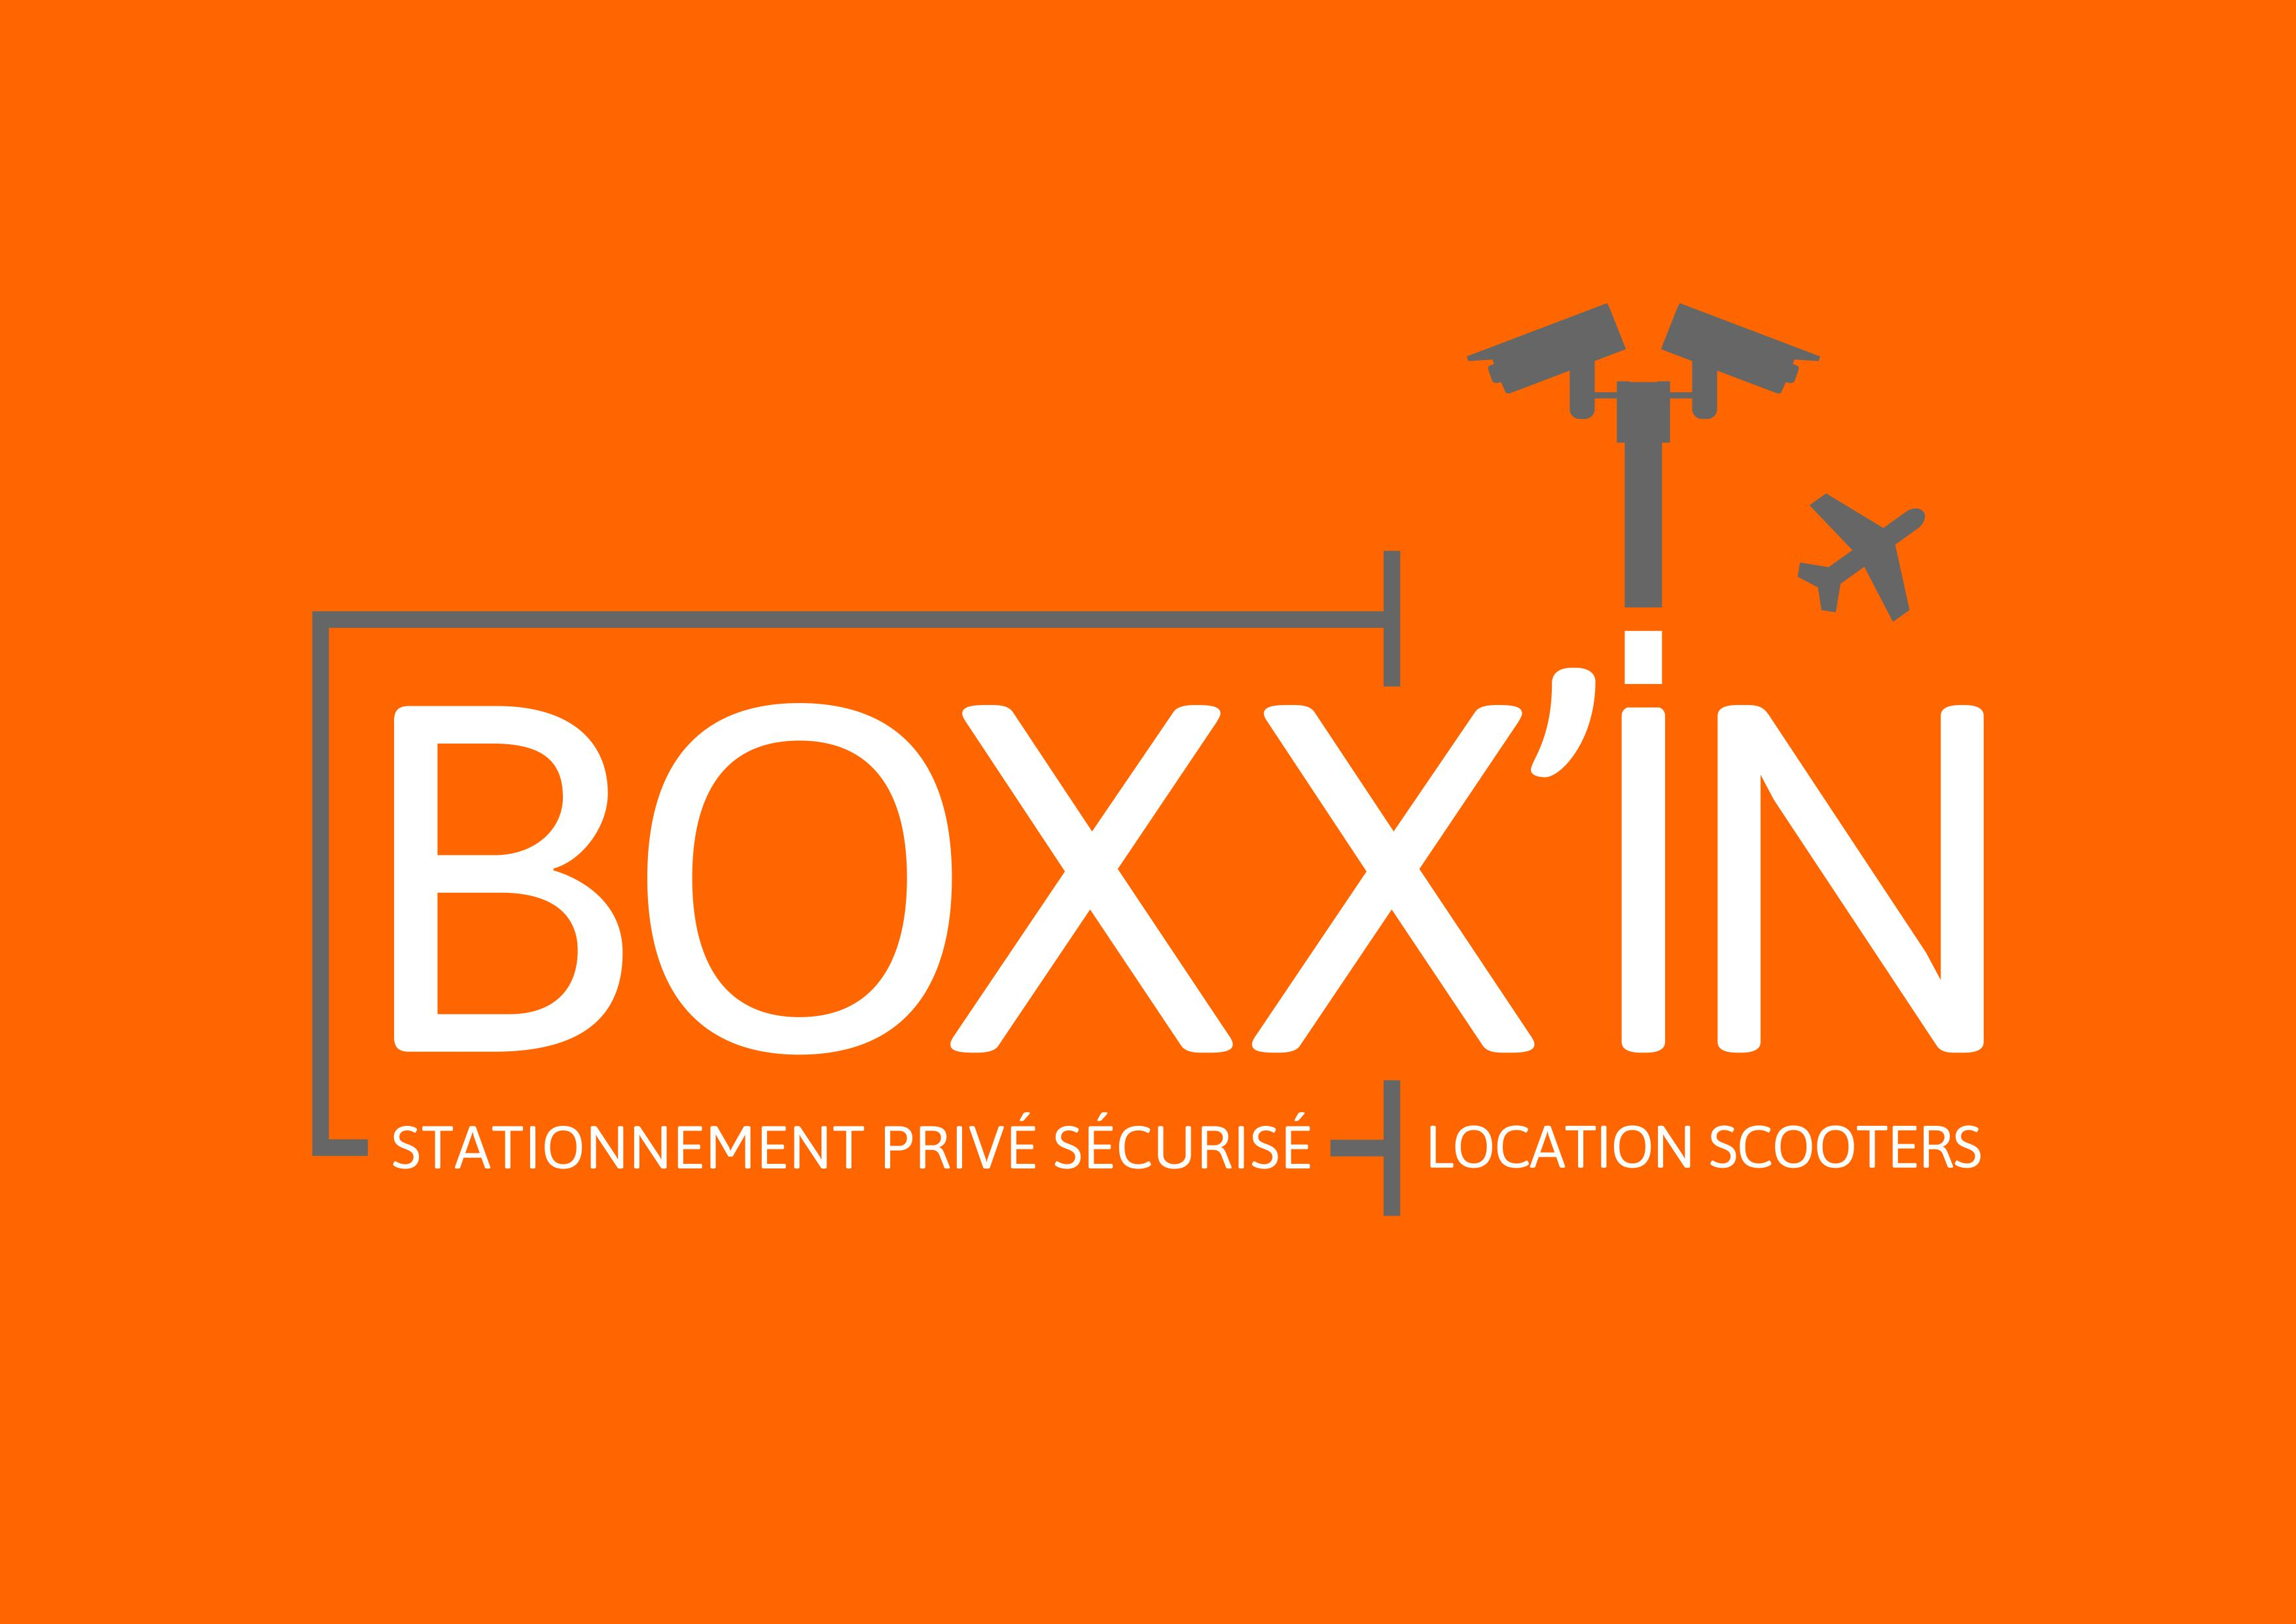 Boxxin parking aéroport de Toulouse Blagnac